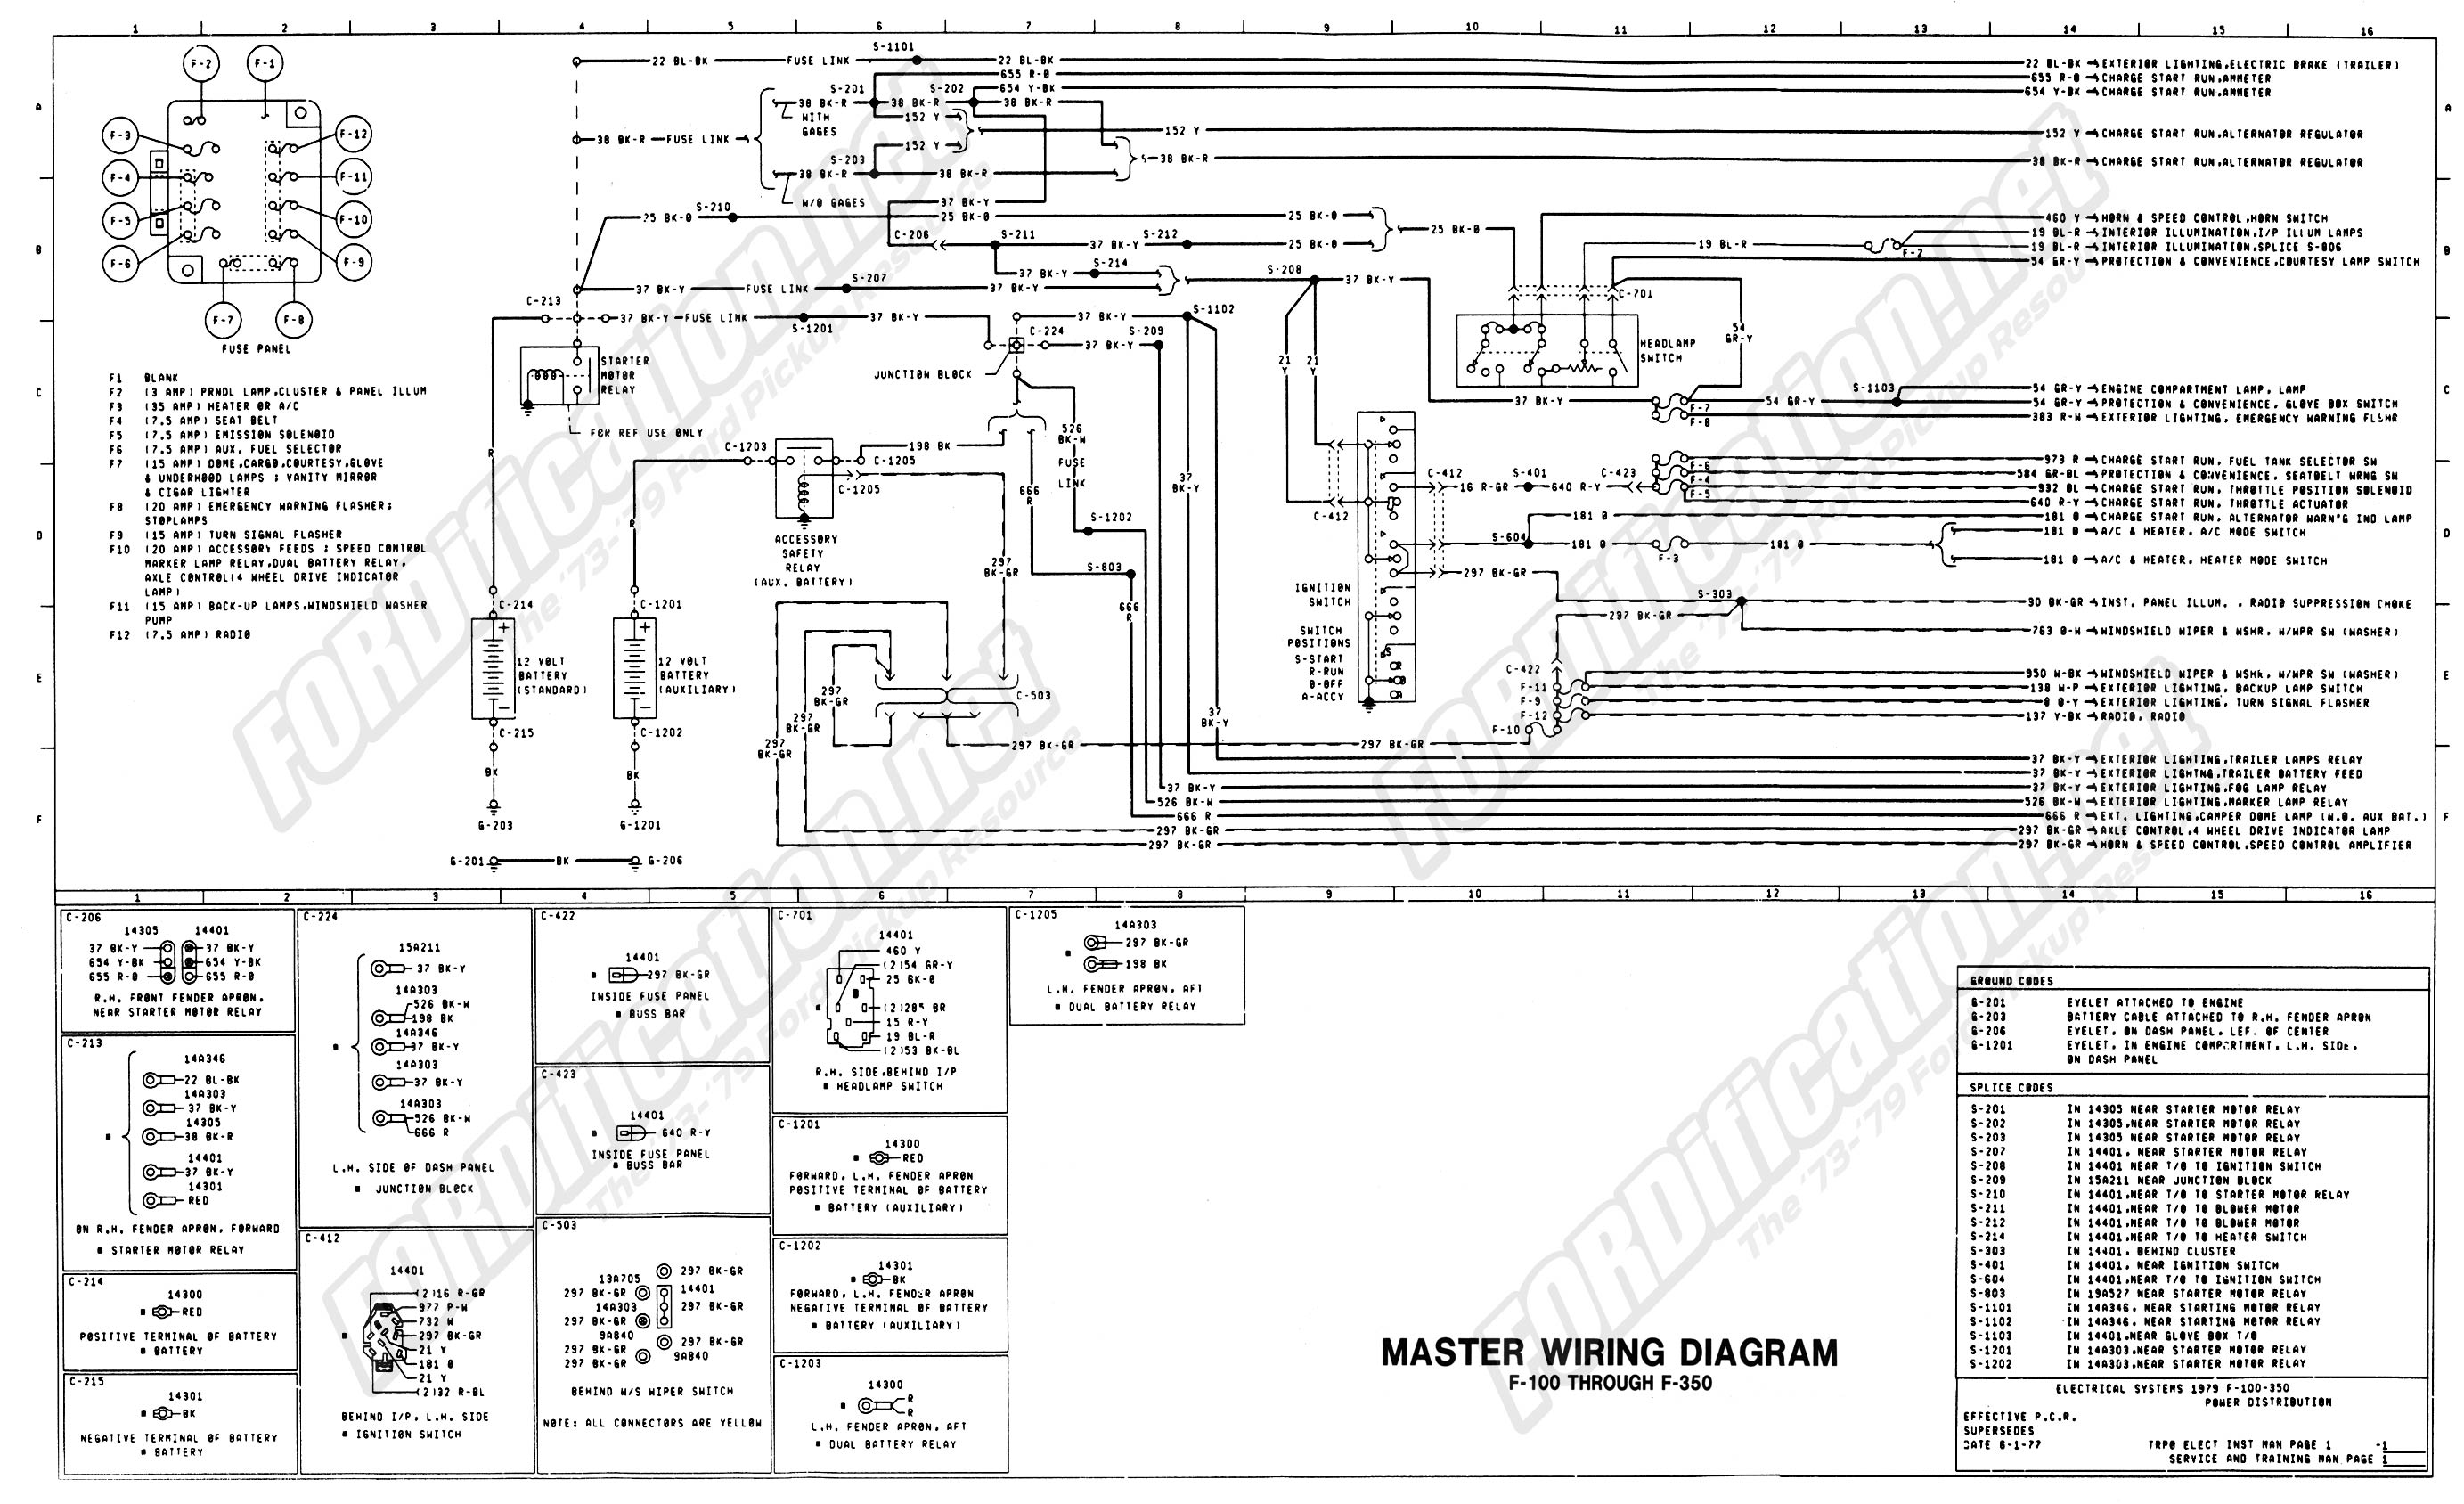 wiring_79master_1of9 1973 1979 ford truck wiring diagrams & schematics fordification net 1979 ford truck fuse box diagram at edmiracle.co